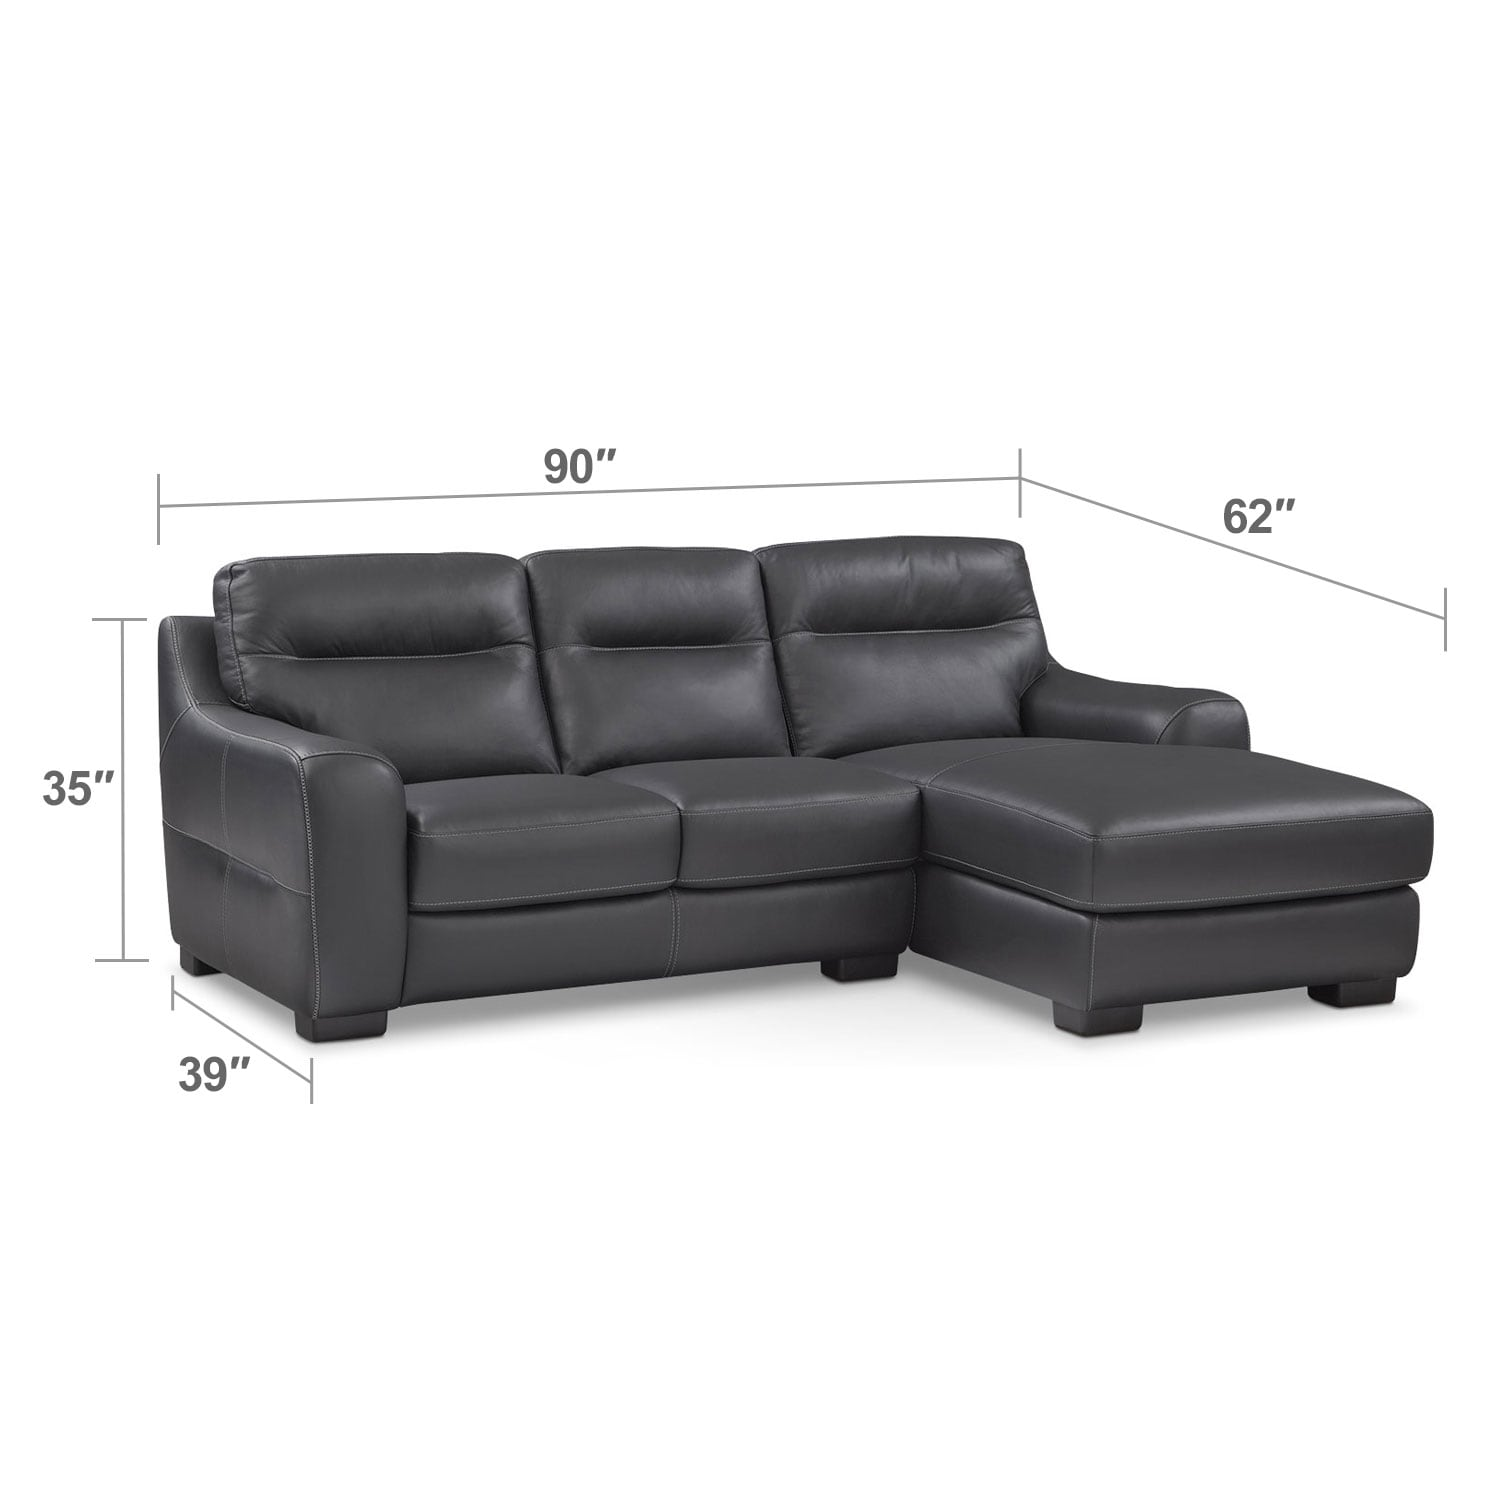 Living Room Furniture - Rocco Black 2 Pc. Right-Facing Chaise Sectional